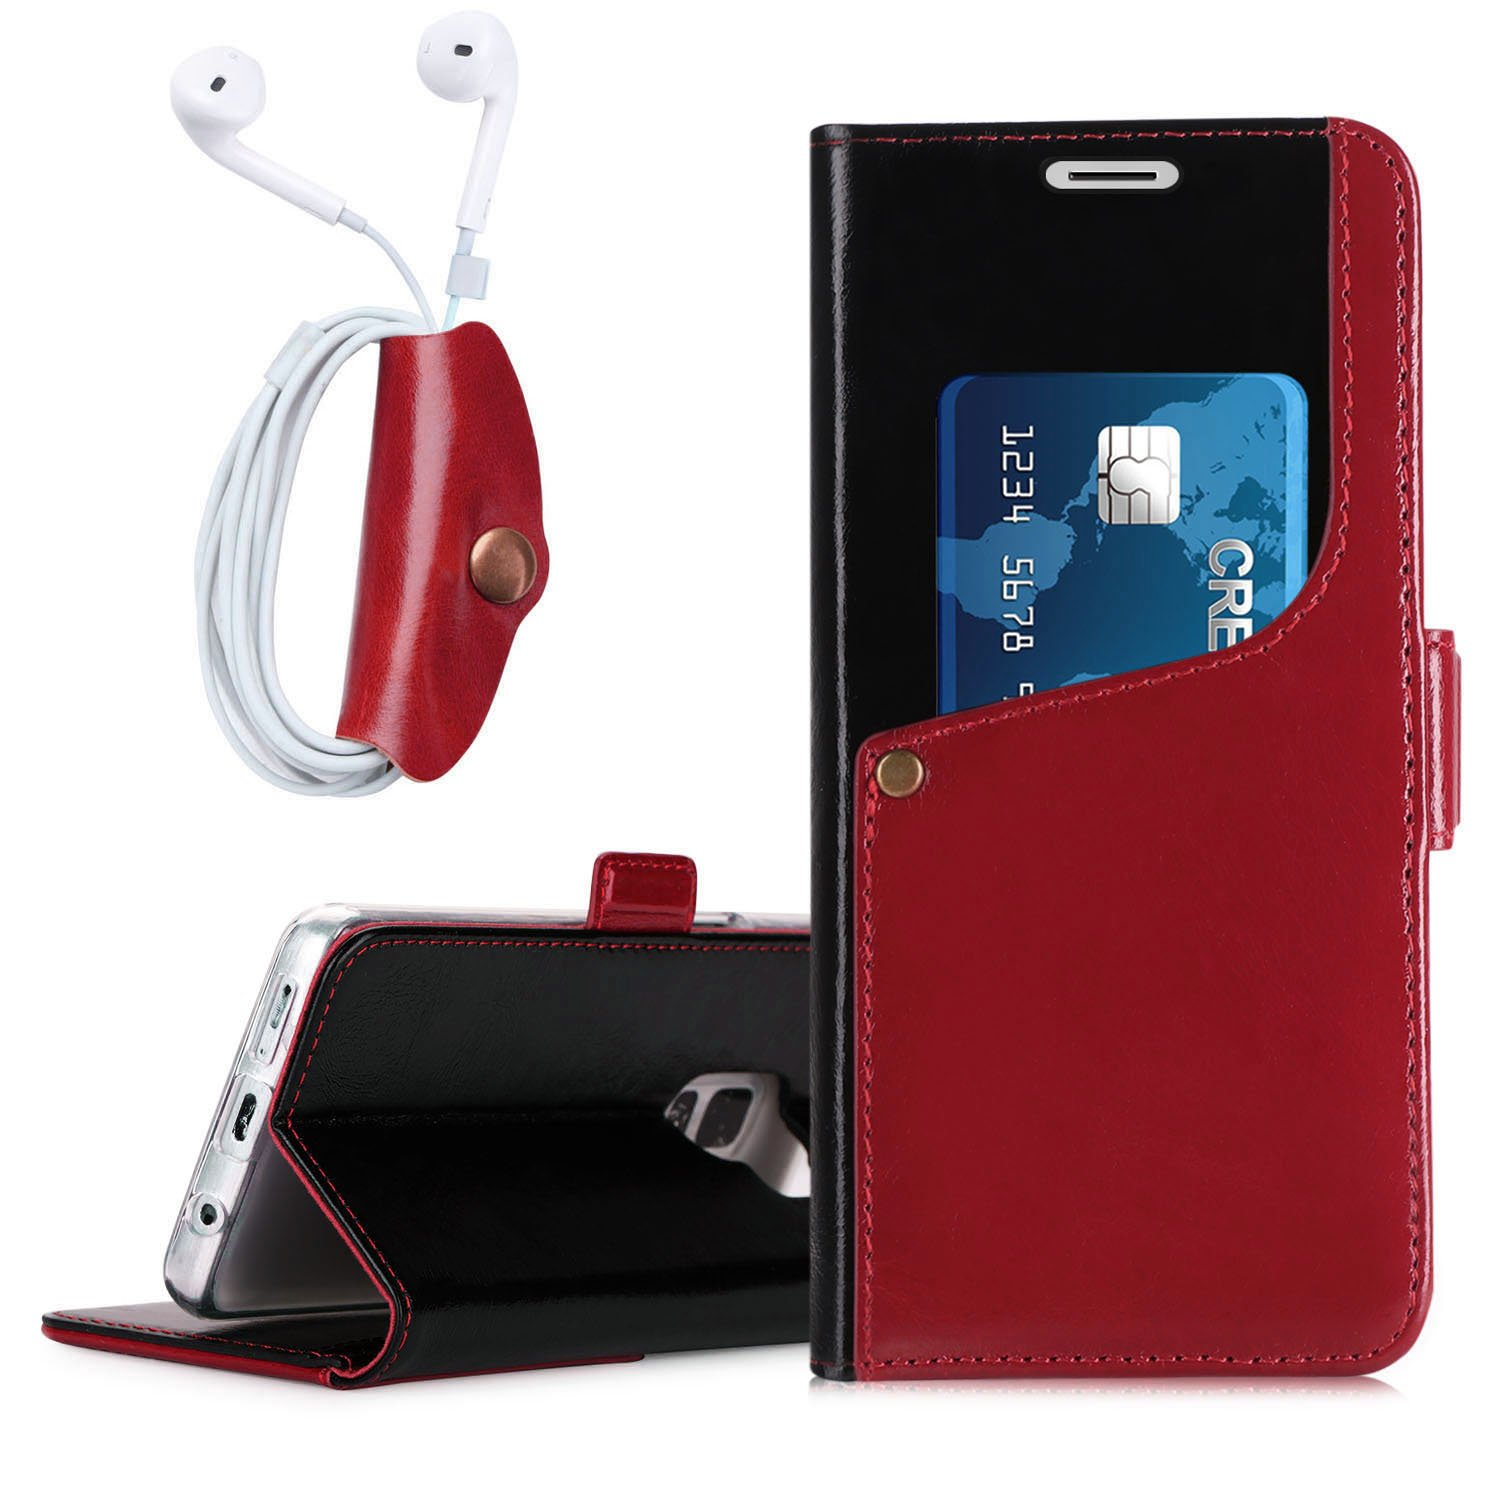 Fyy Galaxy S9 Case Luxurious Genuine Cowhide Leather Goospery Samsung Core 2 Canvas Diary Gray Wallet With Earphone For Black And Wine Red Cell Phones